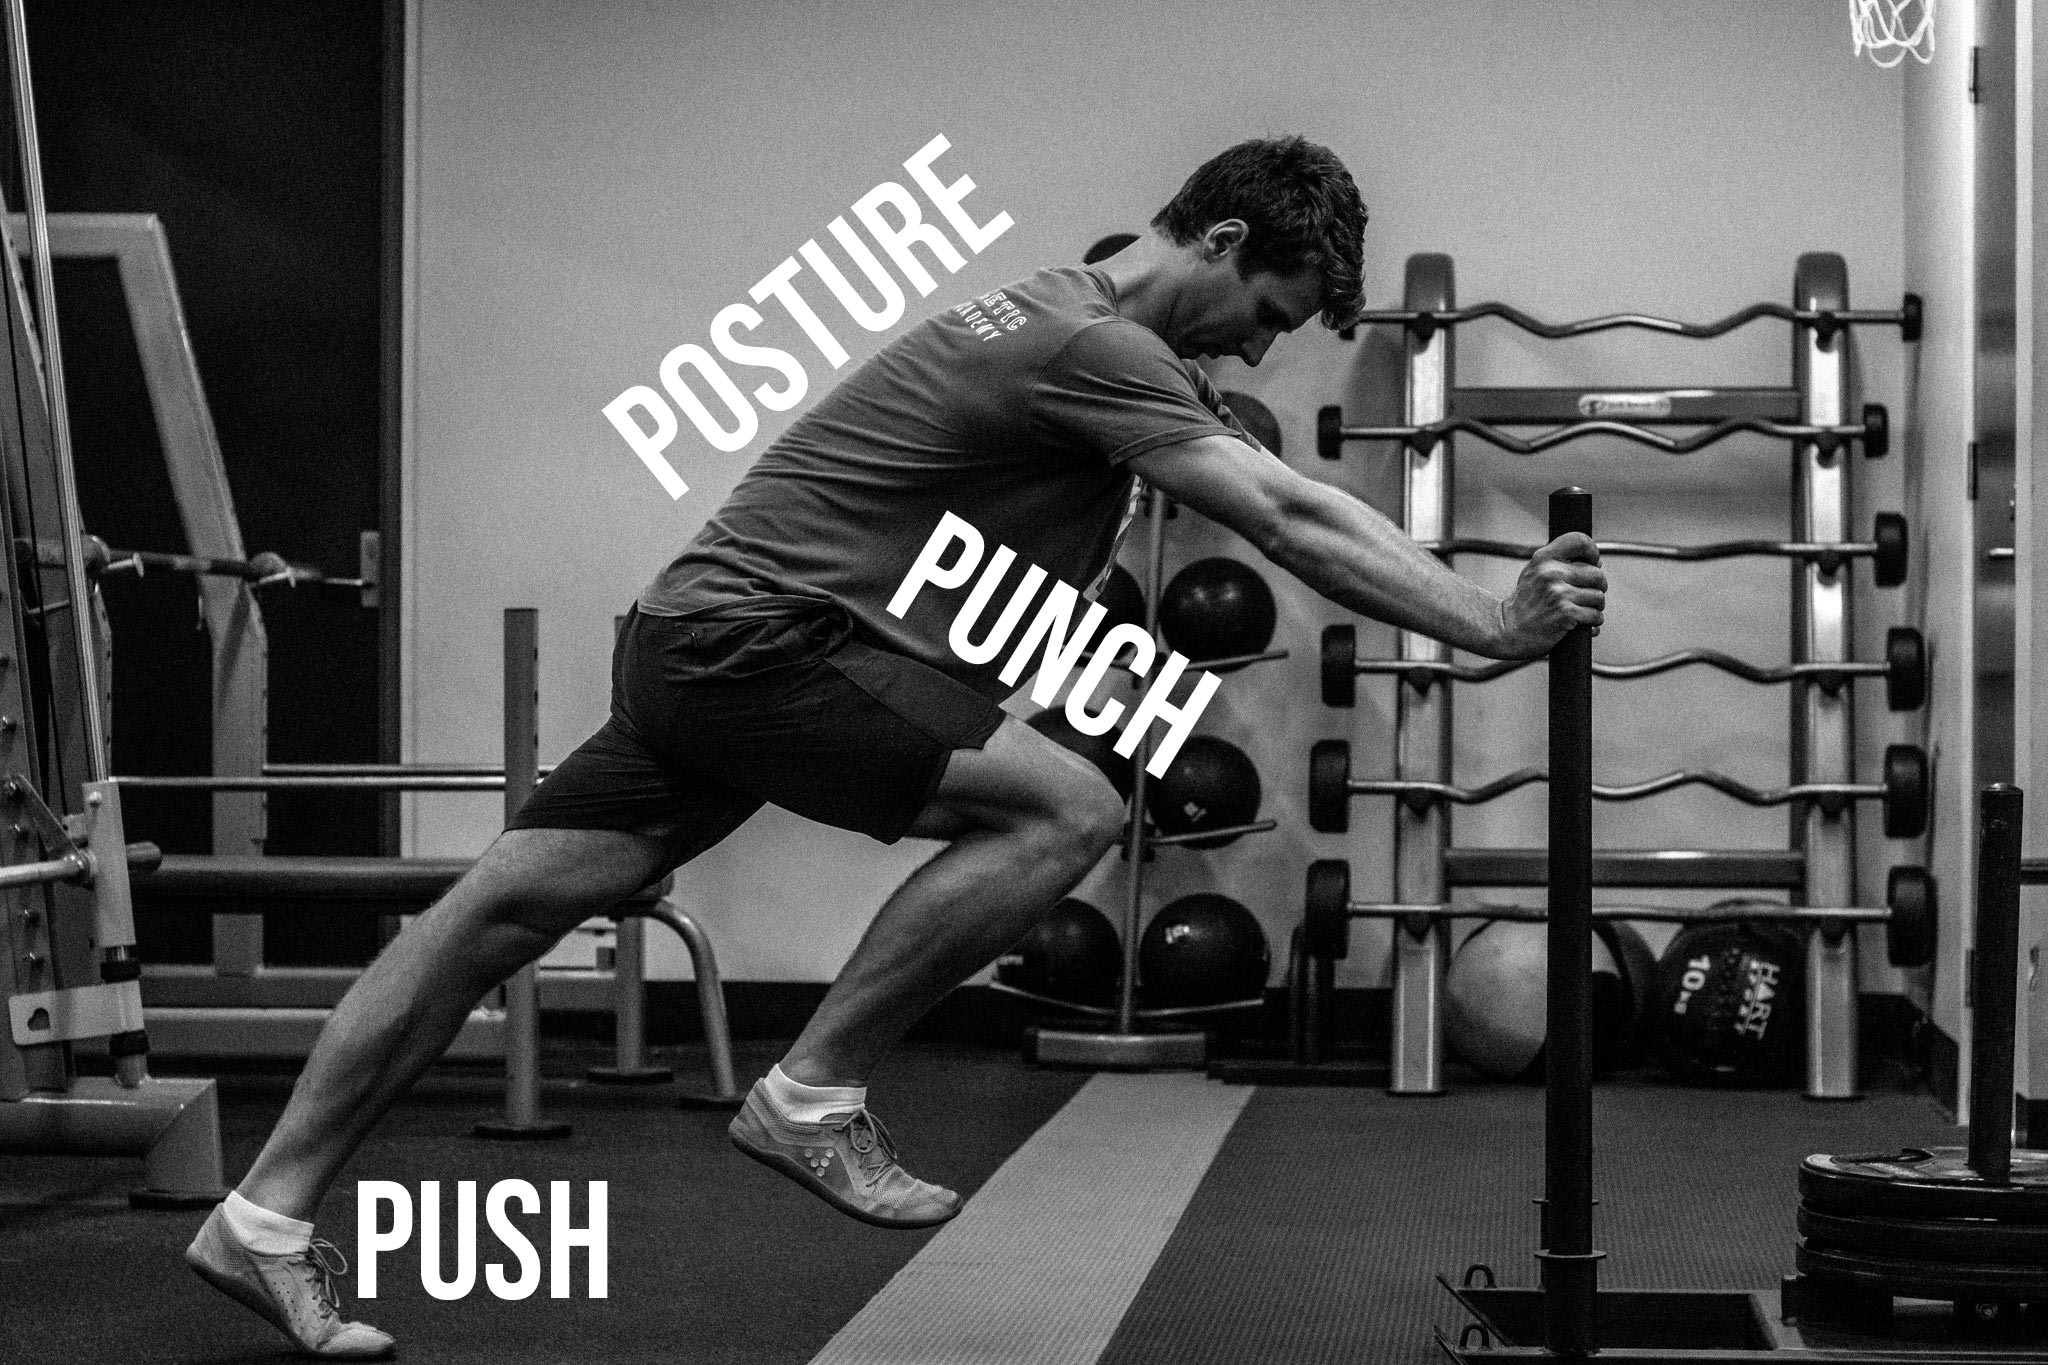 EVERYTHING YOU NEED TO KNOW ABOUT THE SLED PUSH